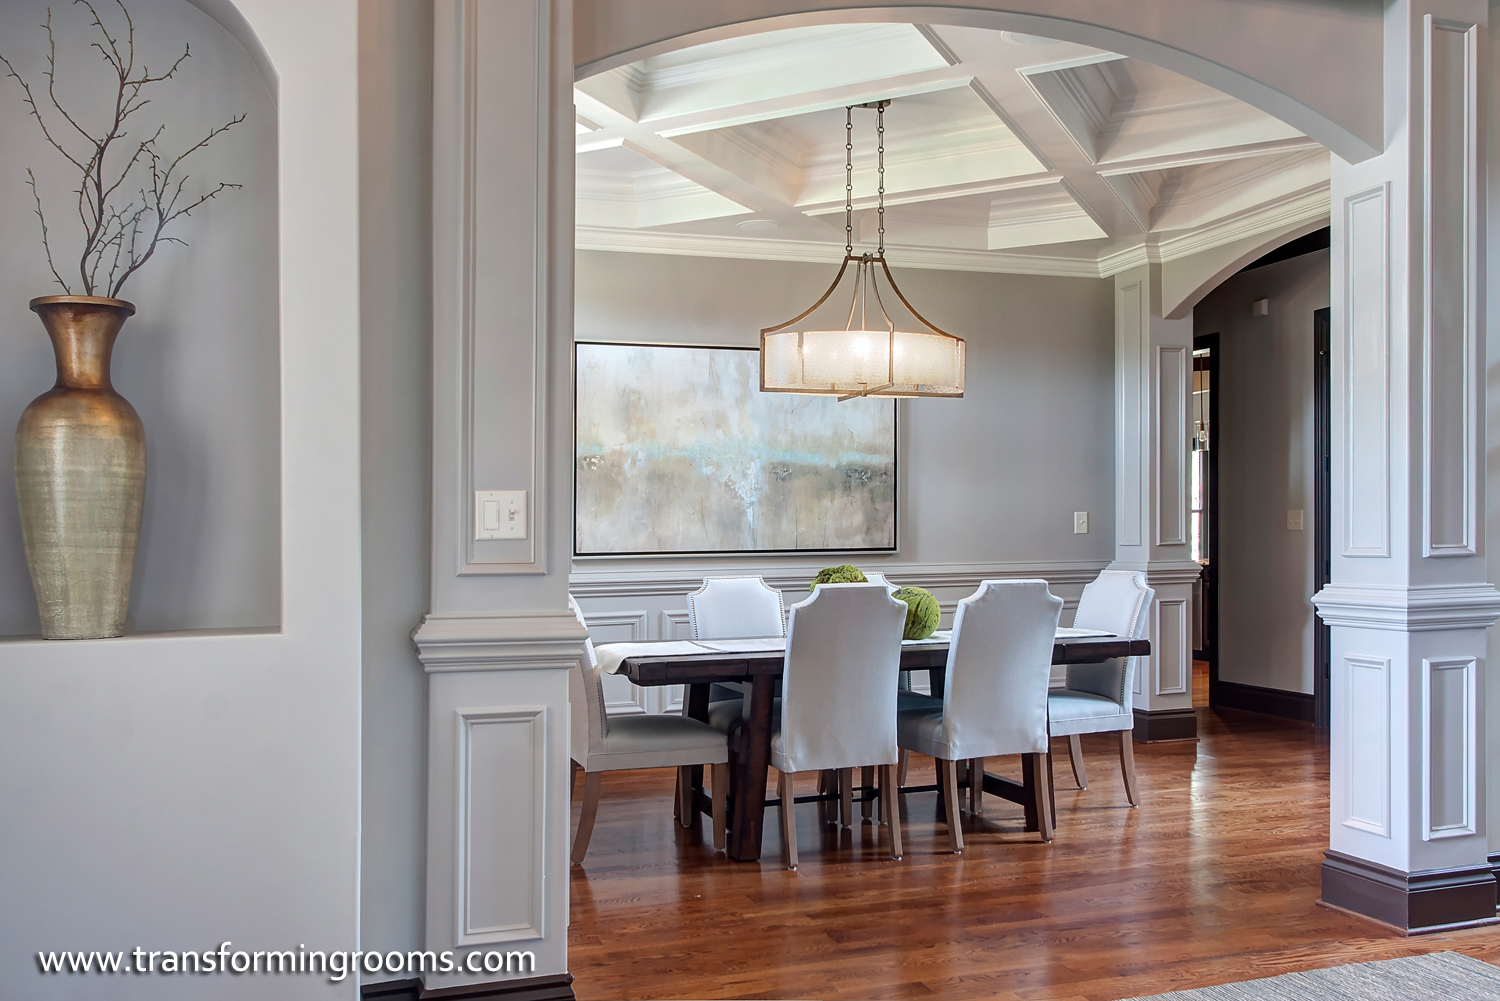 chair rail pros and cons just tables chairs a bench versus dining at the table 9 long might be less expensive than 2 or 3 depending on how many your can hold this cost savings